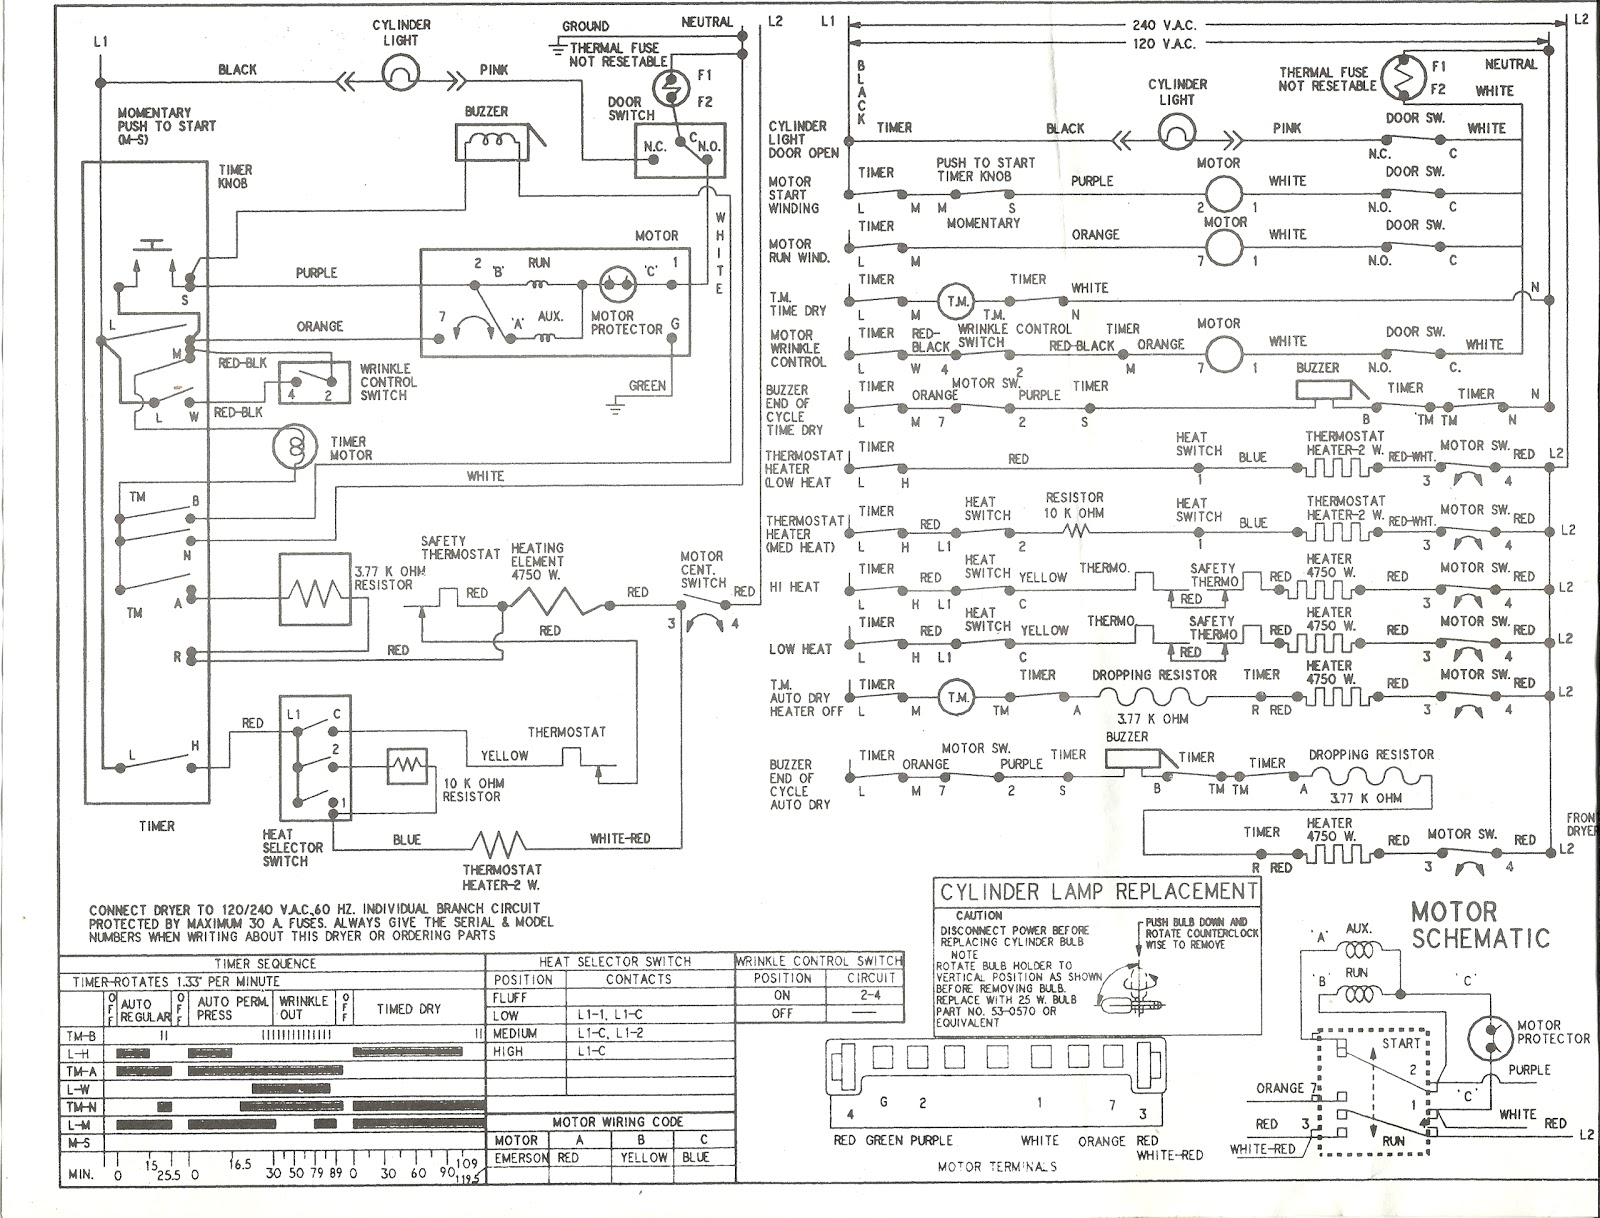 appliance talk kenmore series electric dryer wiring diagram schematic rh blog applianceoutletservice com wiring diagram of whirlpool dryer wiring diagram for dryer outlet 3 prong